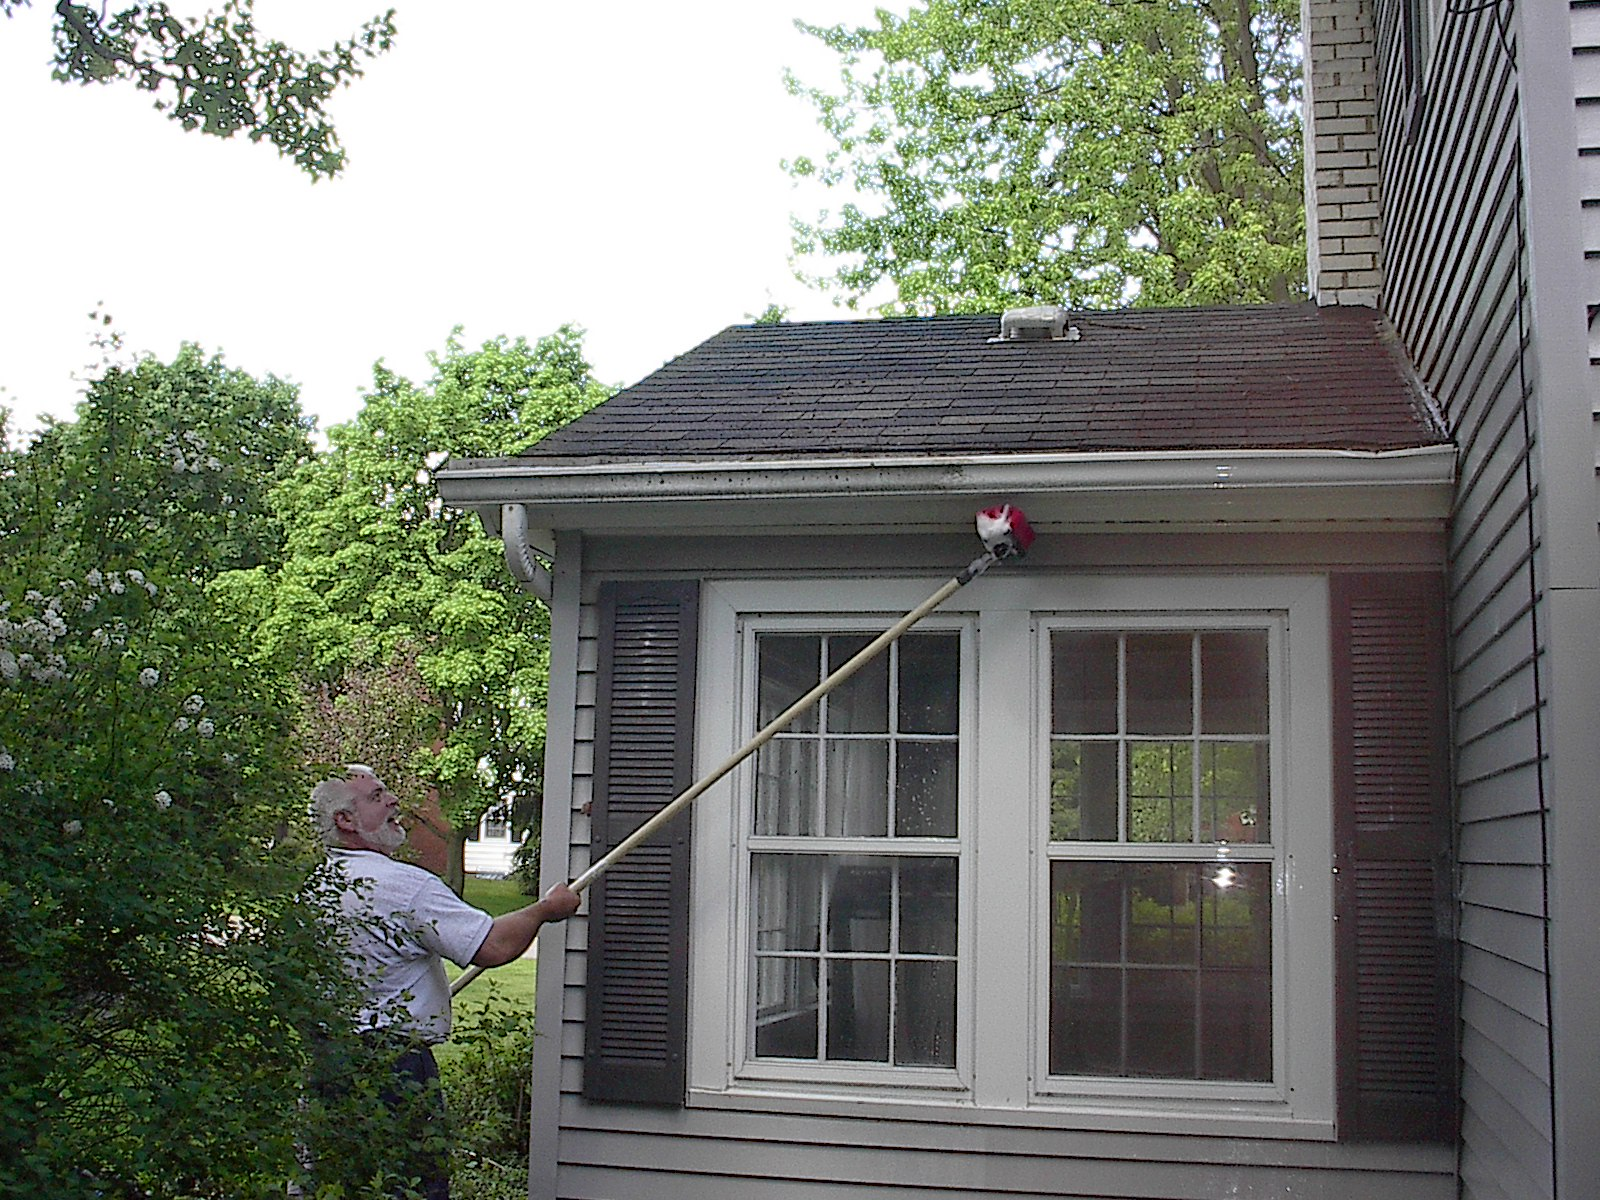 """While we all know why a clean home is important, we might not know how to keep it clean. If you want to sell, is your home making the most of its """"first impression"""" potential? Home Team Power Clean is western Michigan's resource for a house washing service that puts your property on the map and helps it stand out above the other homes in your neighborhood. A New Level Of Clean A beautiful property can get hidden behind a layer of dirt and grime. Our house washing service is a great option for any exterior – vinyl, composite, wood, stone, and stucco – Home Team provides the appearance that most homeowners yearn for. Home Team delivers successful results thanks to our complete commitment to quality. All of the technology, cleaners, and equipment at your property will be cutting edge. And they'll be deployed by a team who knows how to safely restore your exterior for 20 years and running. Behind Our Process We care about the long-term value of your home exterior. That's why, instead of a conventional pressure washing service, we have a soft washing system designed to combat dirt without the forceful impact. Cutting Edge Technology: Our state-of-the-art mobile system dispels water at high and low pressure with finesse to: Remove dirt, dust, and grit Kill and remove algae, mold, and mildew Eliminate stains, streaks and cobwebs With water softening technology, plant-friendly detergents that actually clean your home, the sky's the limit when it comes to our cleaning capabilities. Our goal is to create a beautiful home for every customer. With our house washing service, that first impression is yours for the taking. Most Home Team clients will tell us: """"My home has never looked this good before!"""""""